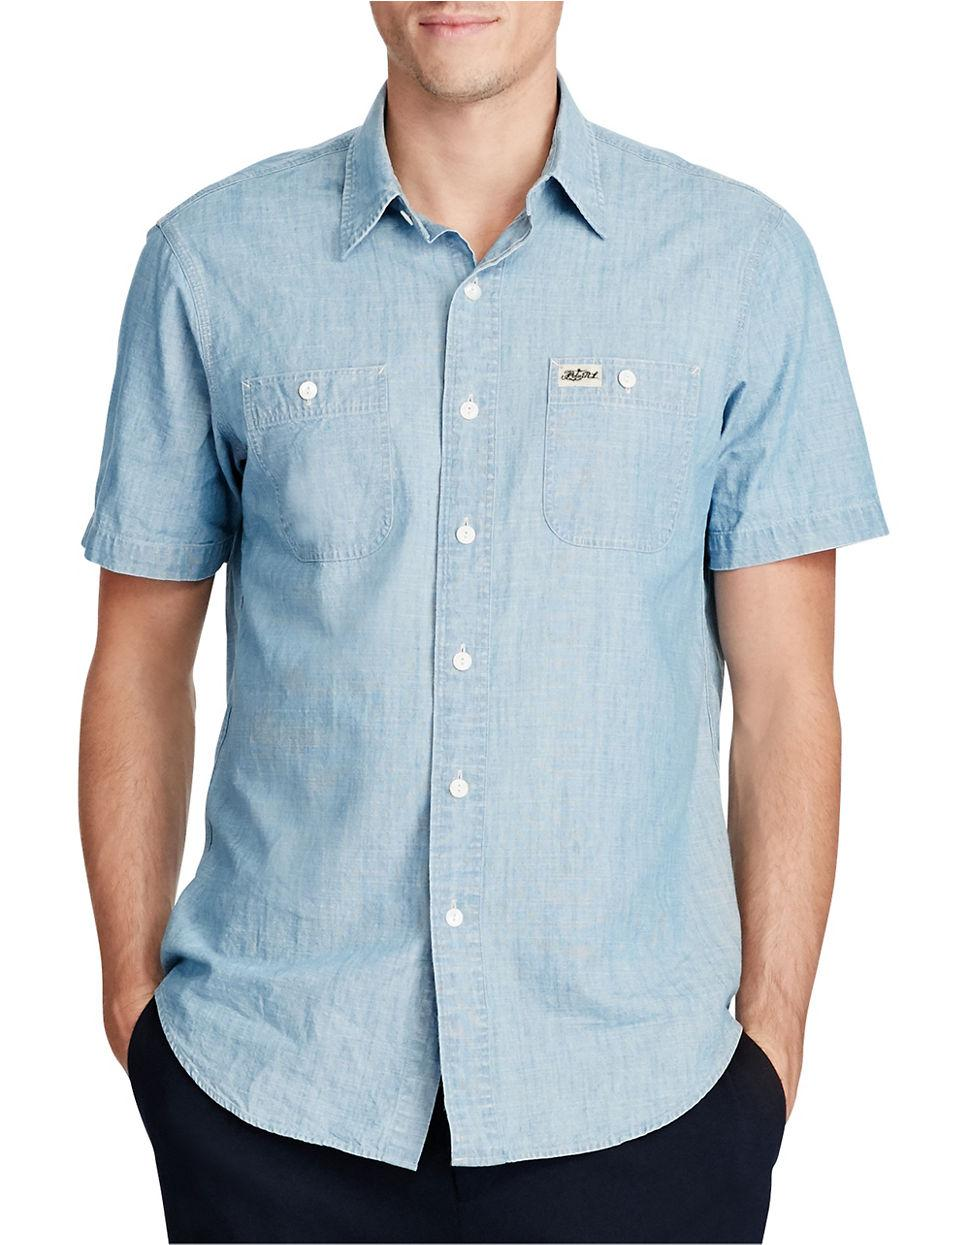 Polo Ralph Lauren Cotton Chambray Work Shirt In Blue For